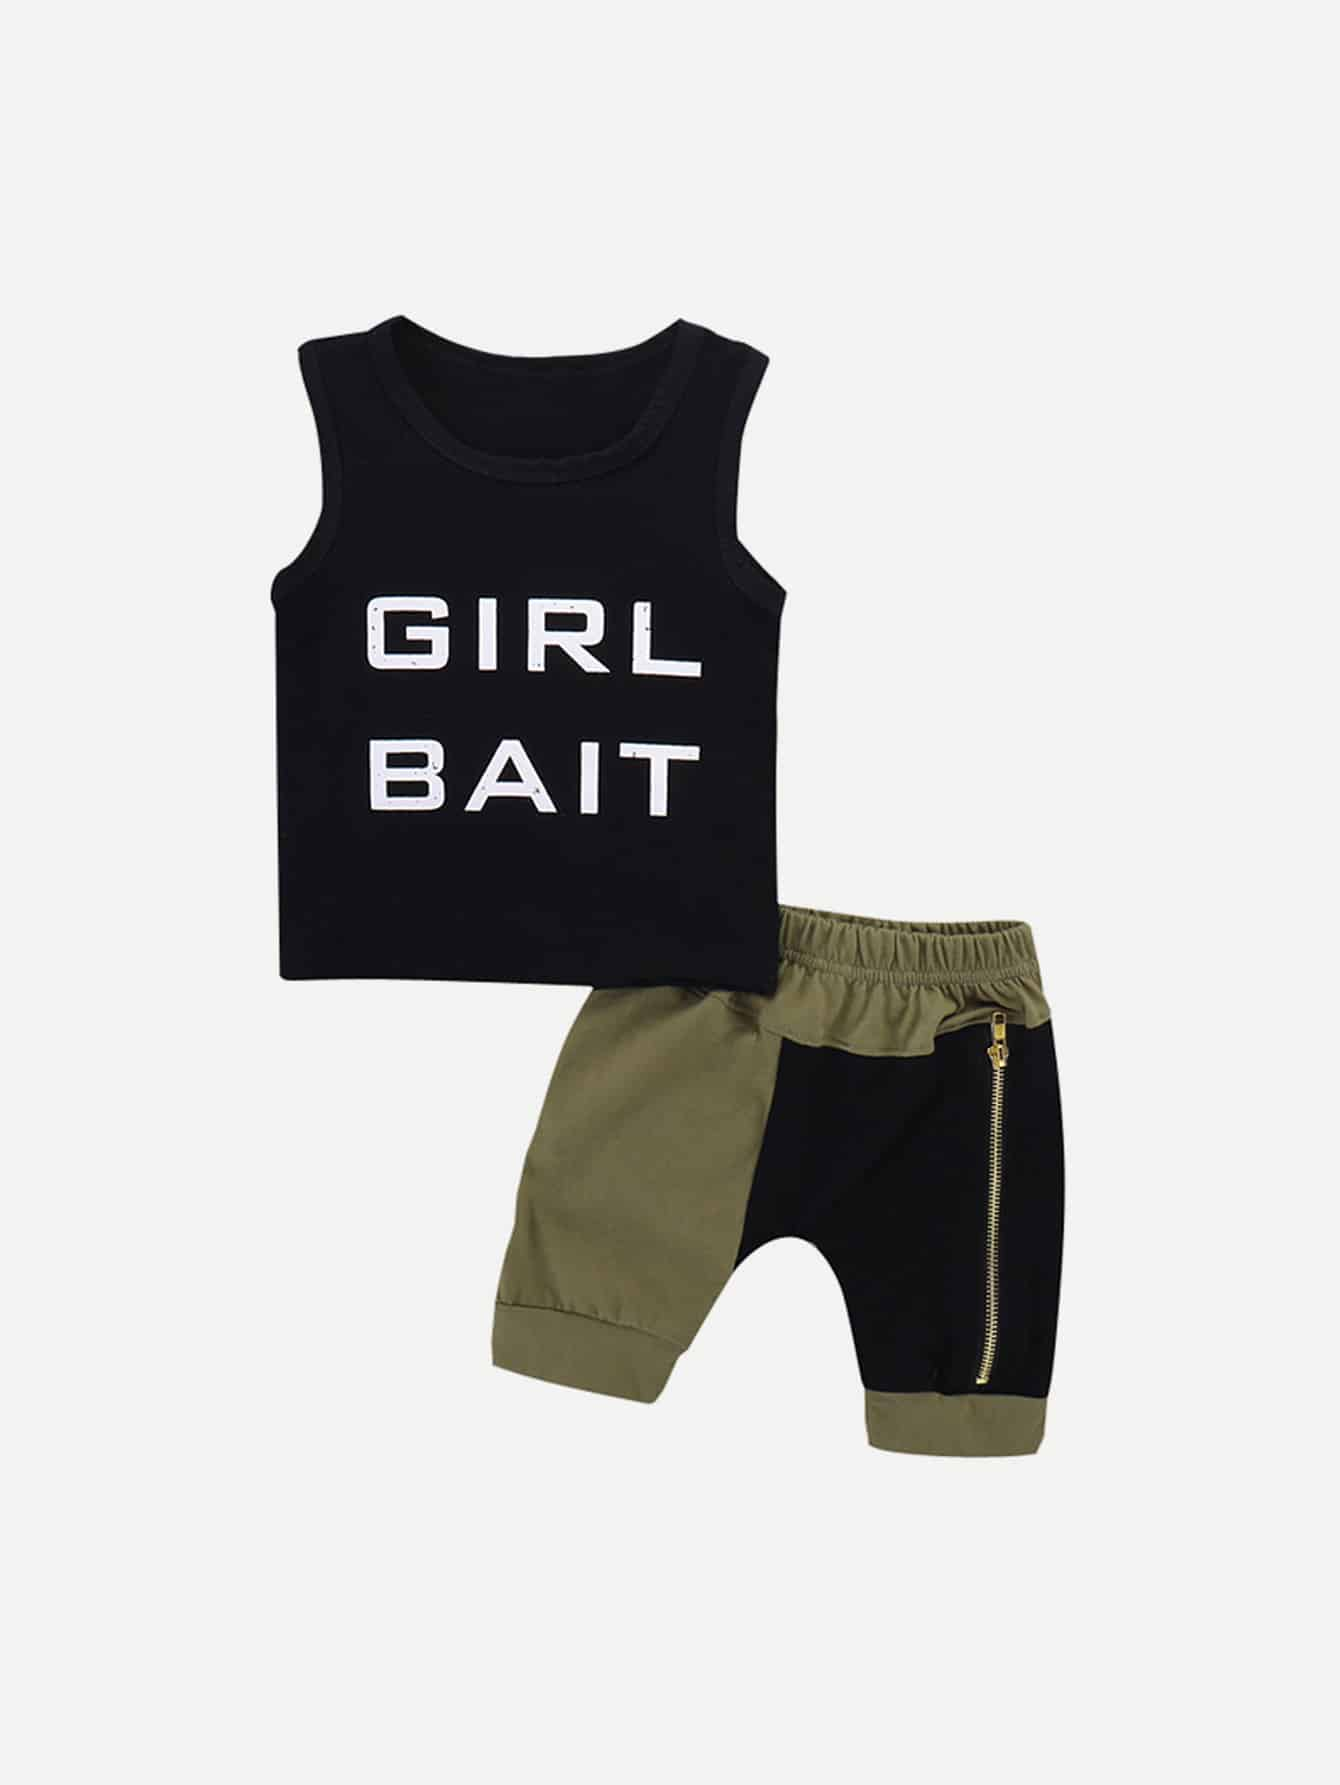 Toddler Boys Letter Print Top & Shorts null